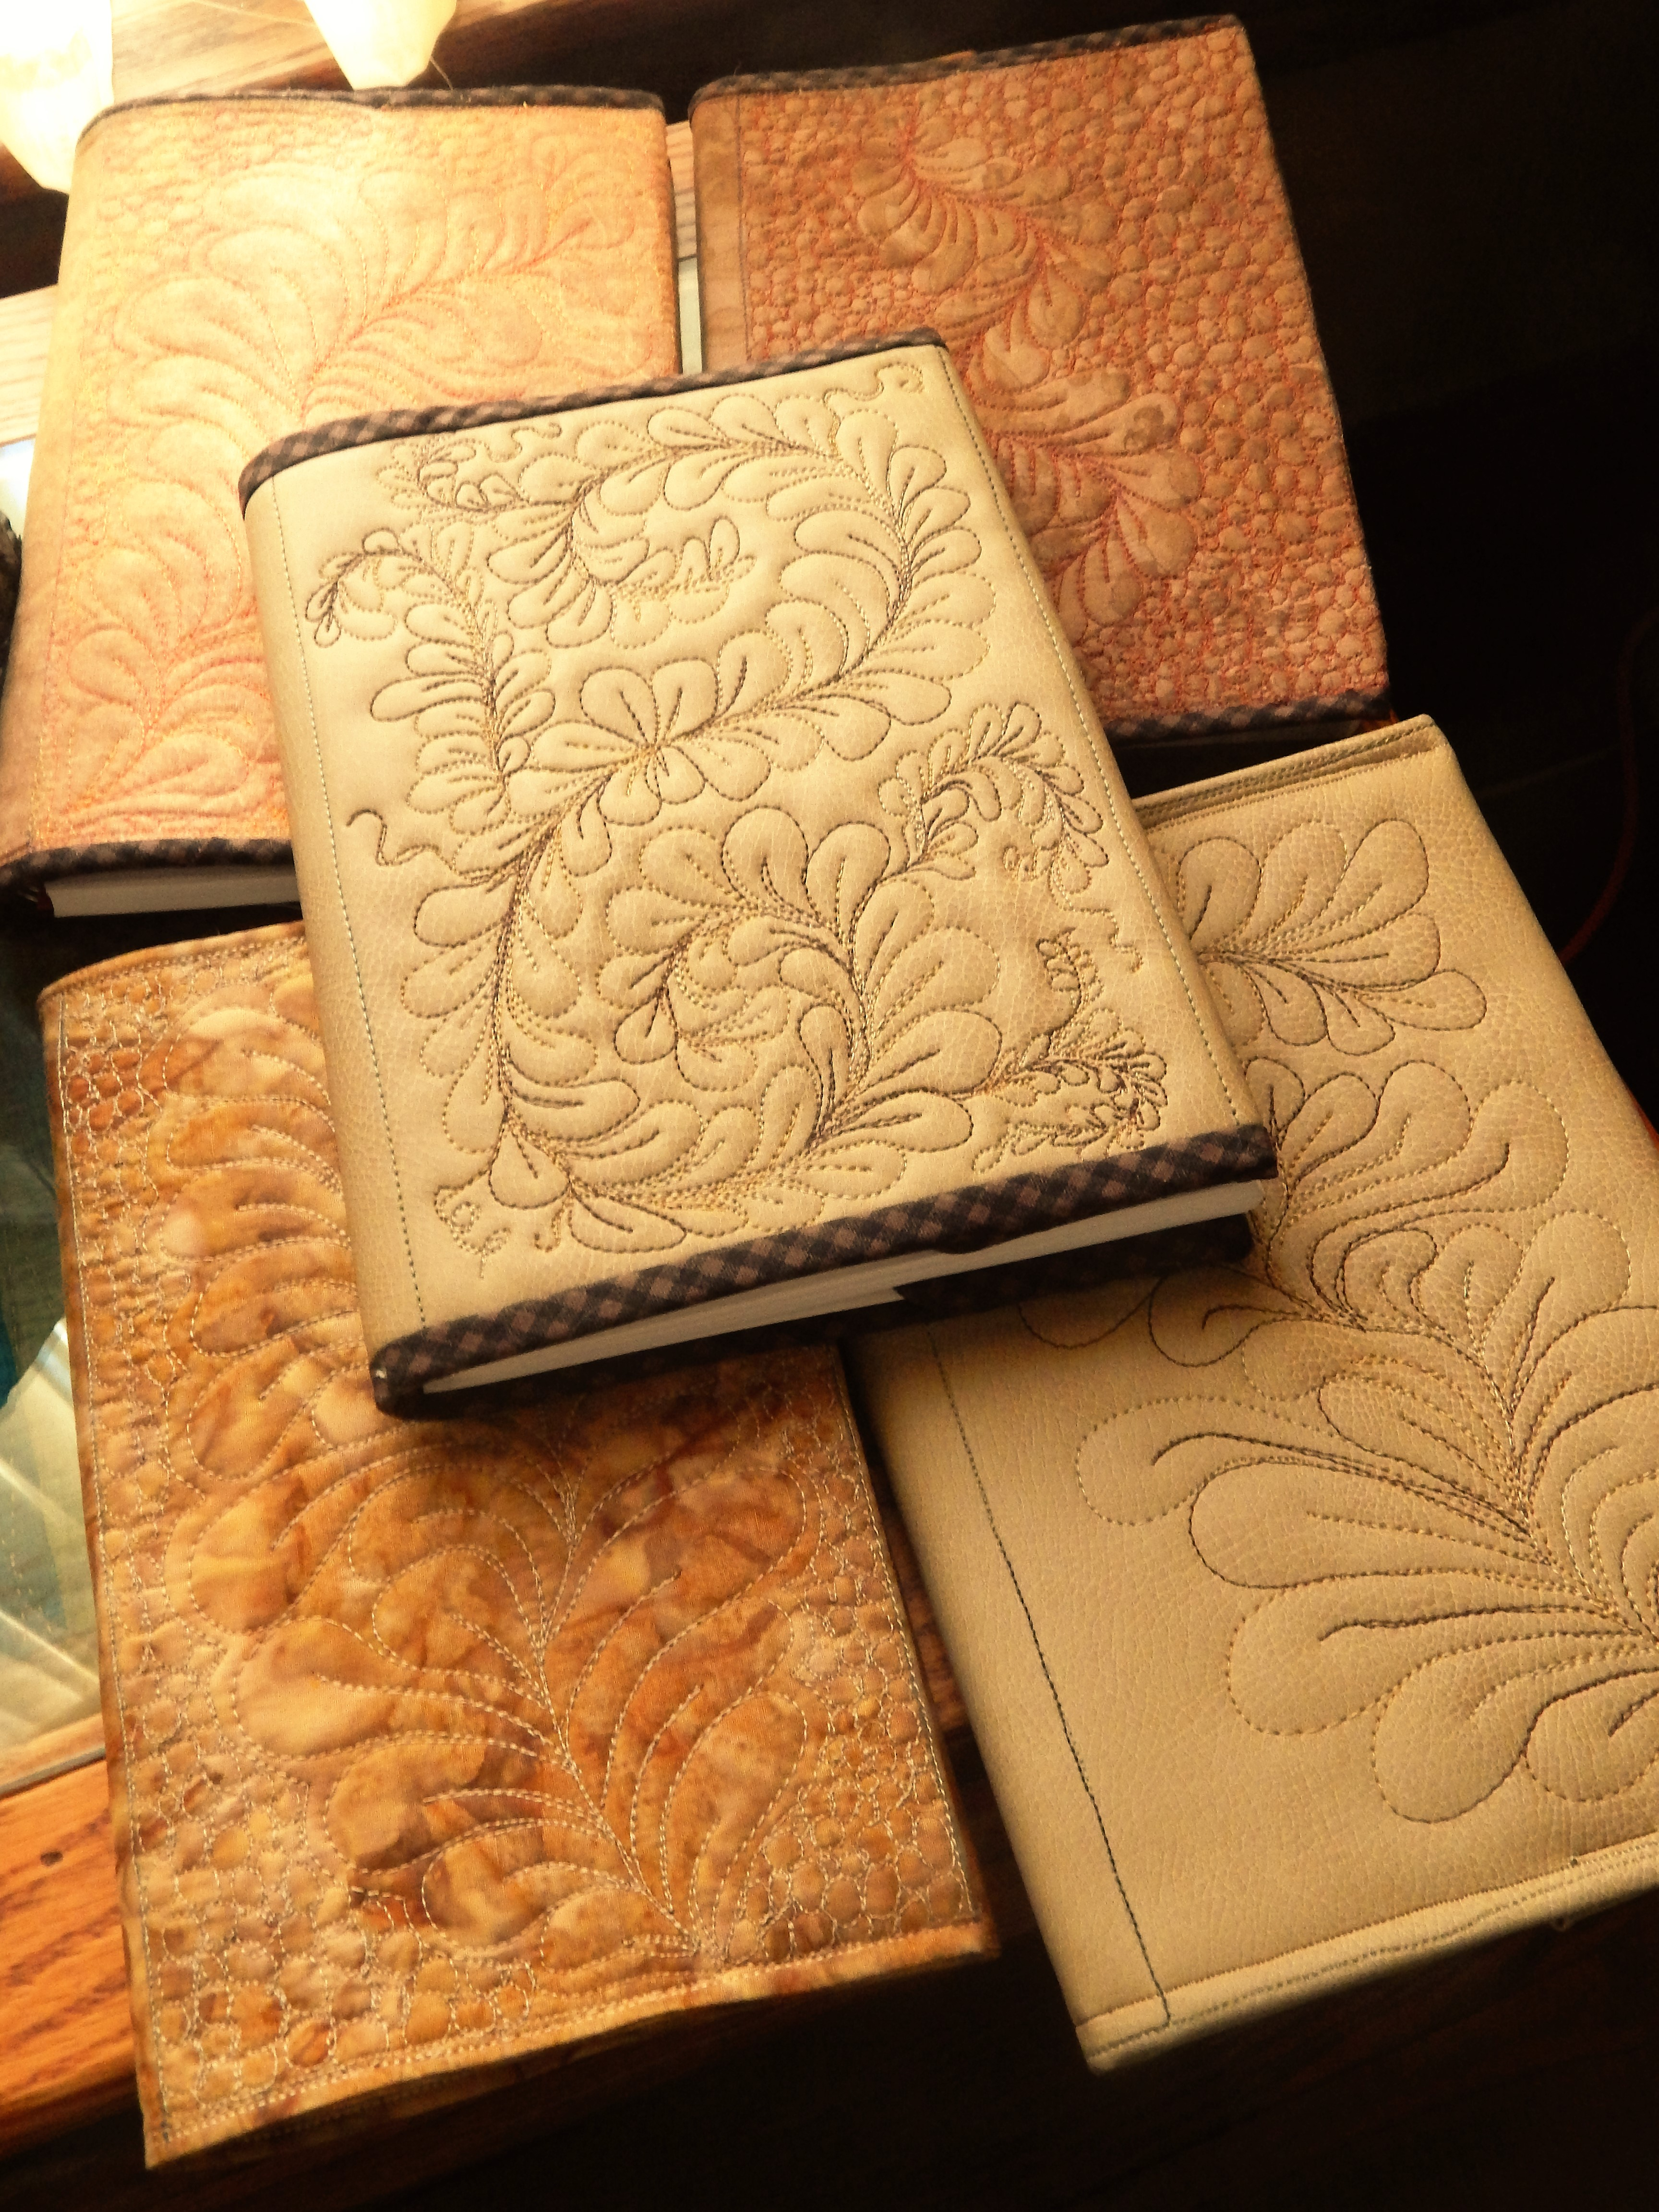 Charm It Worked I Think A Few A Video Real Lear At Some More Hand Quilting I Used Some Faux Lear On A Few More Book Covers Tim Latimer photos Leather Book Covers